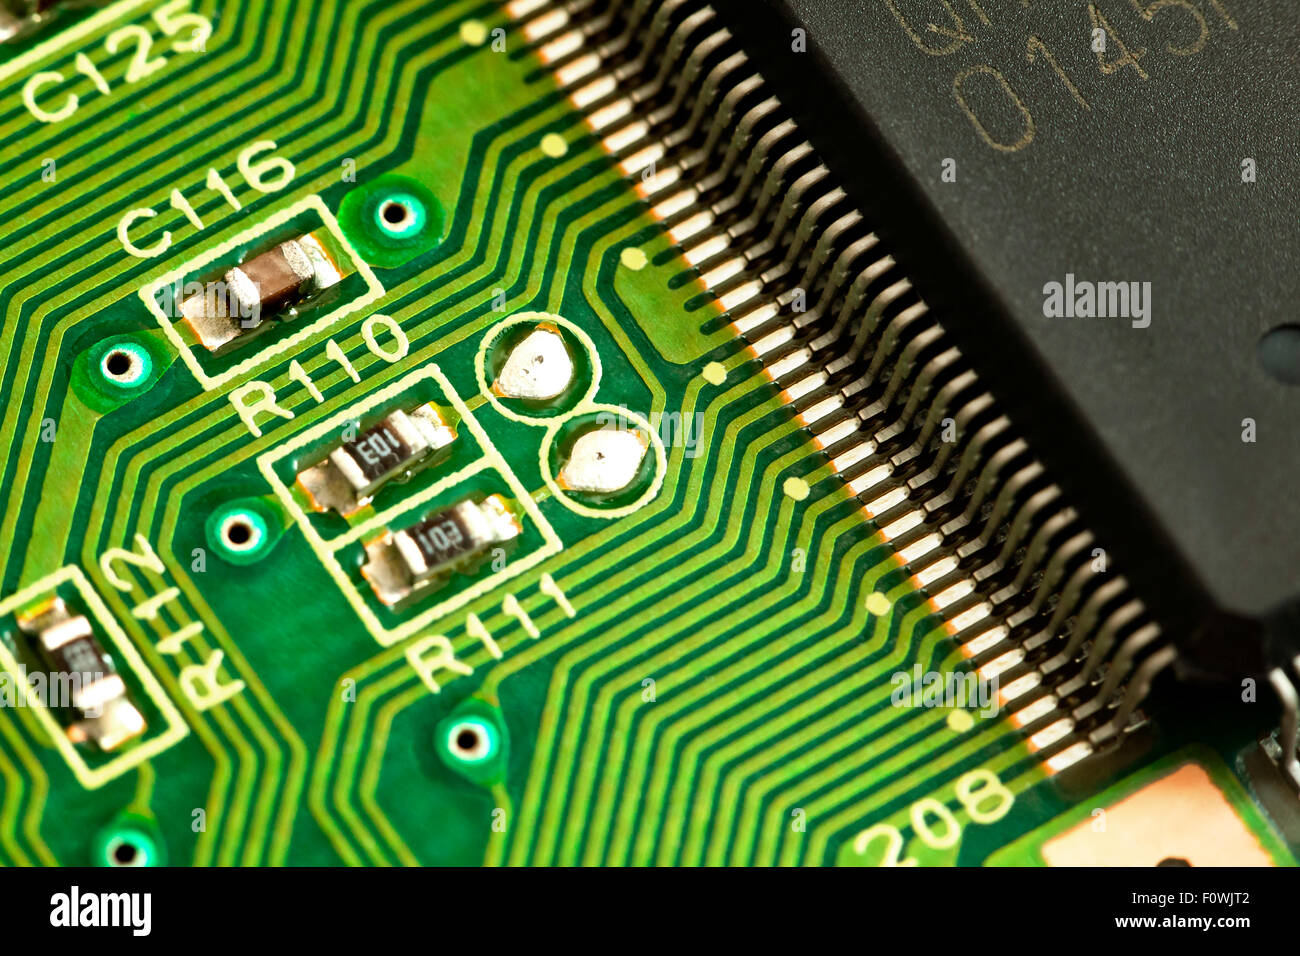 Circuit Board Components Stock Photos Picture Of A Closeup Showing Conductive Traces Chip Contacts And Resistors Image